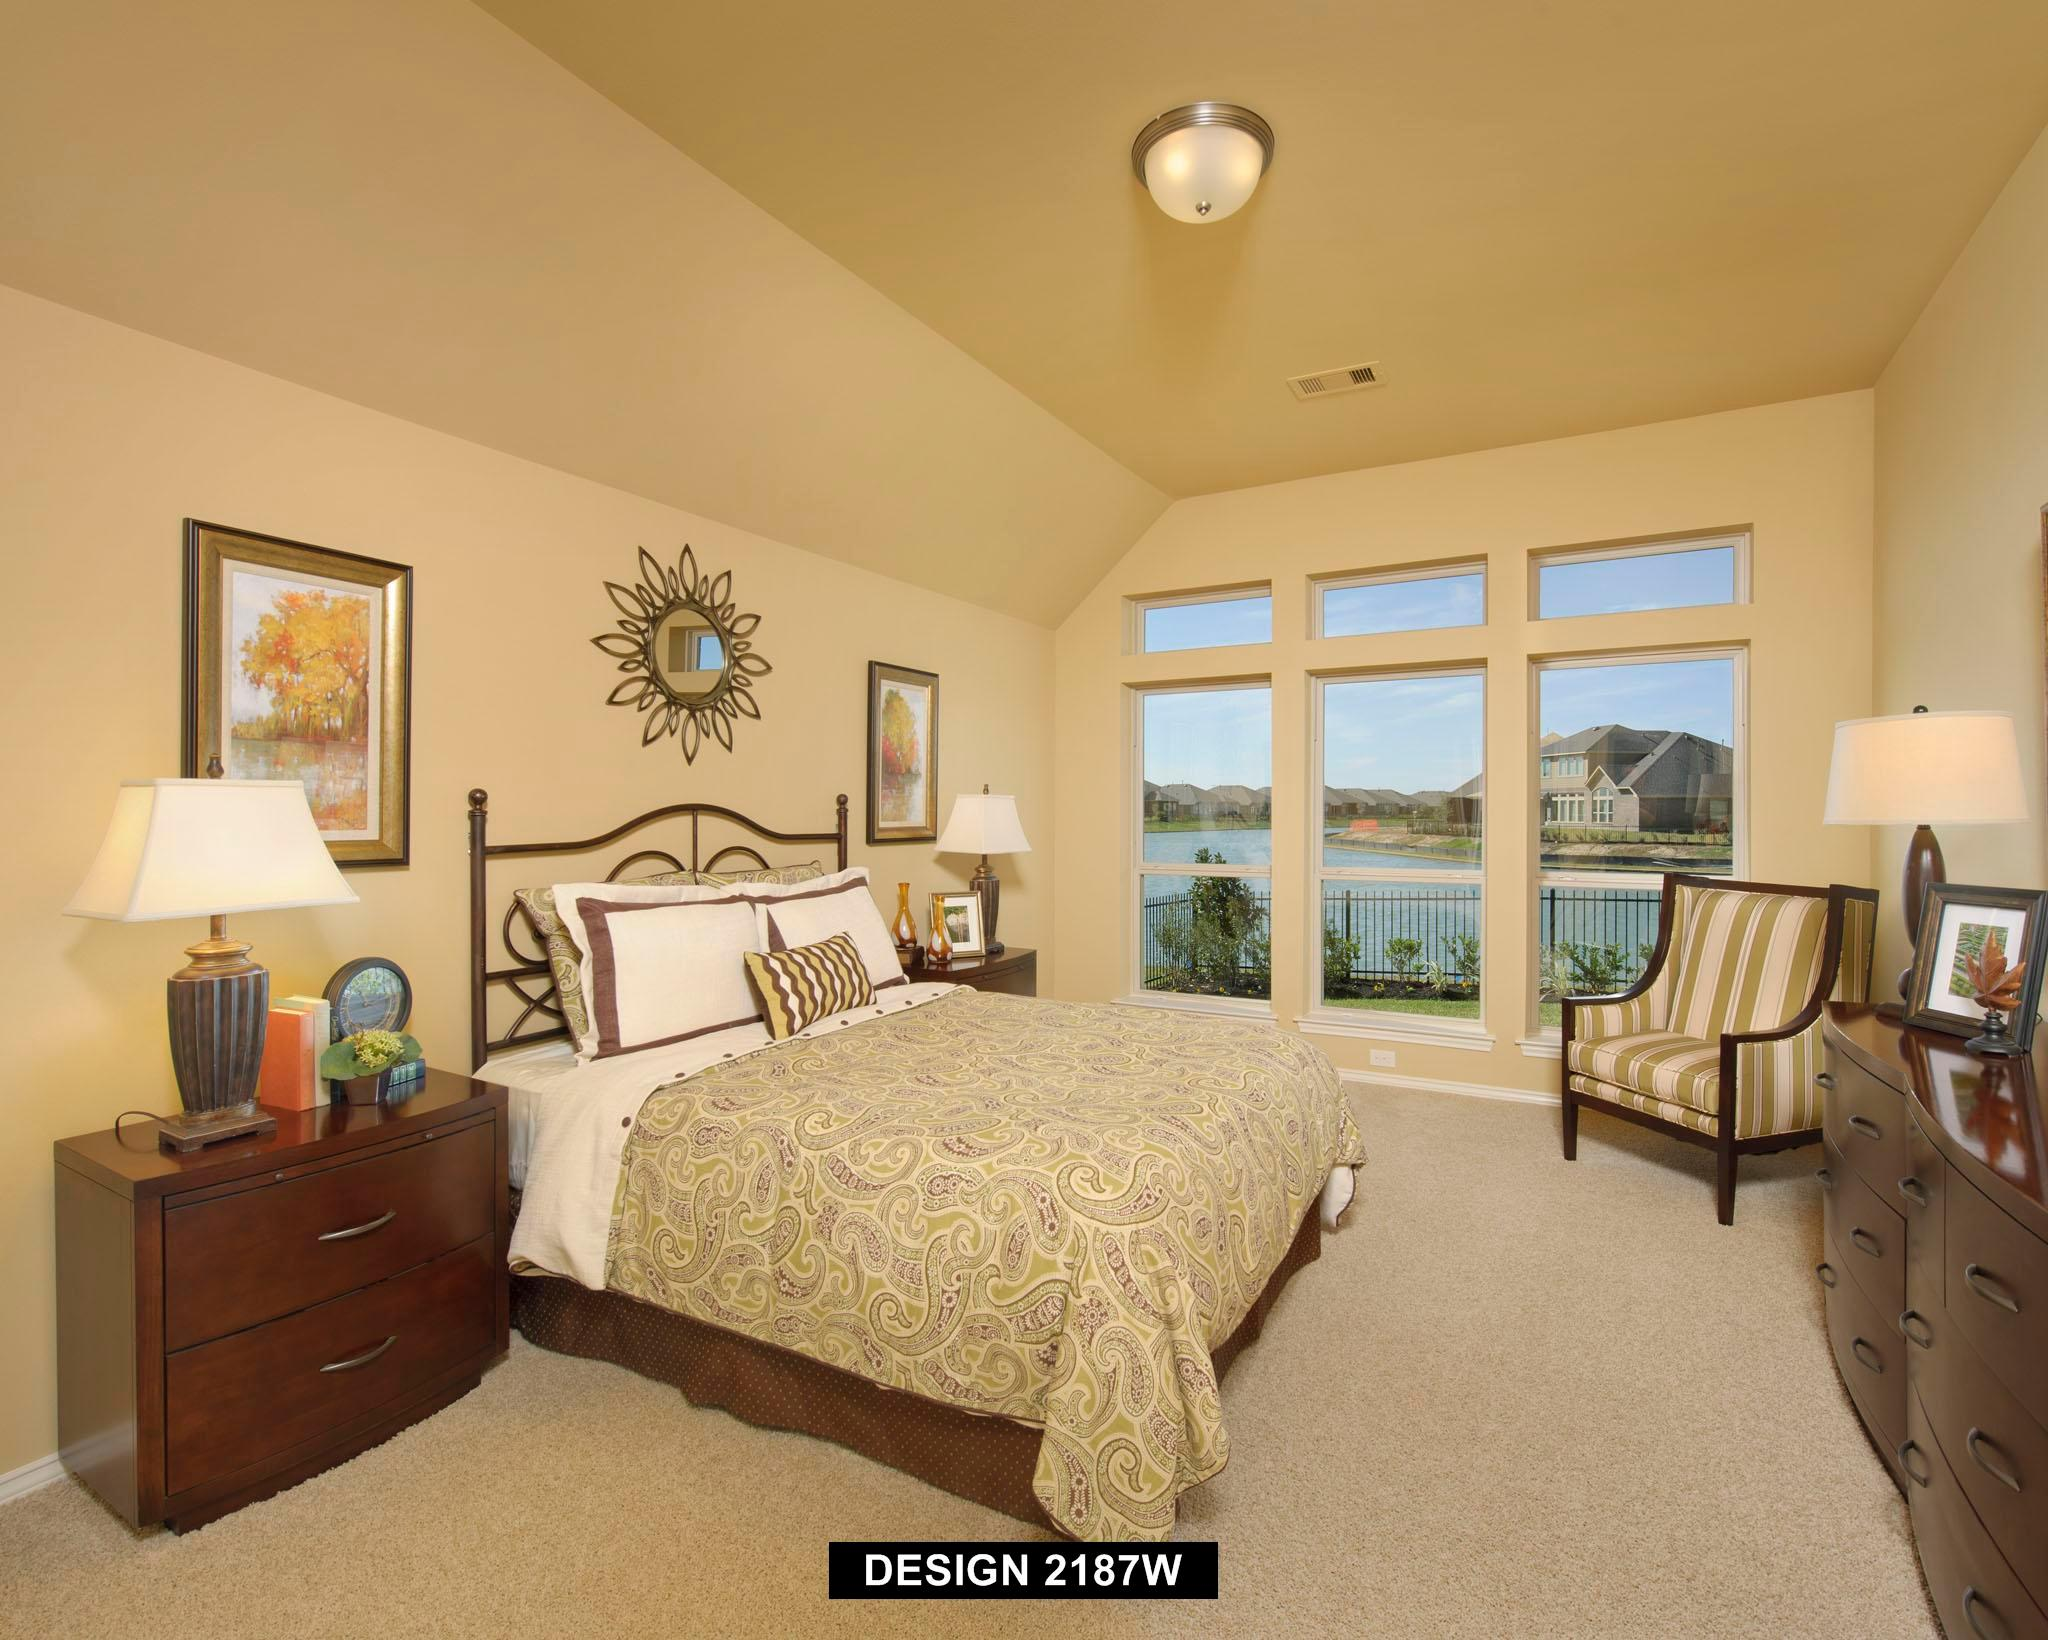 Awesome Perry Homes Design Center Houston Gallery Design Ideas.